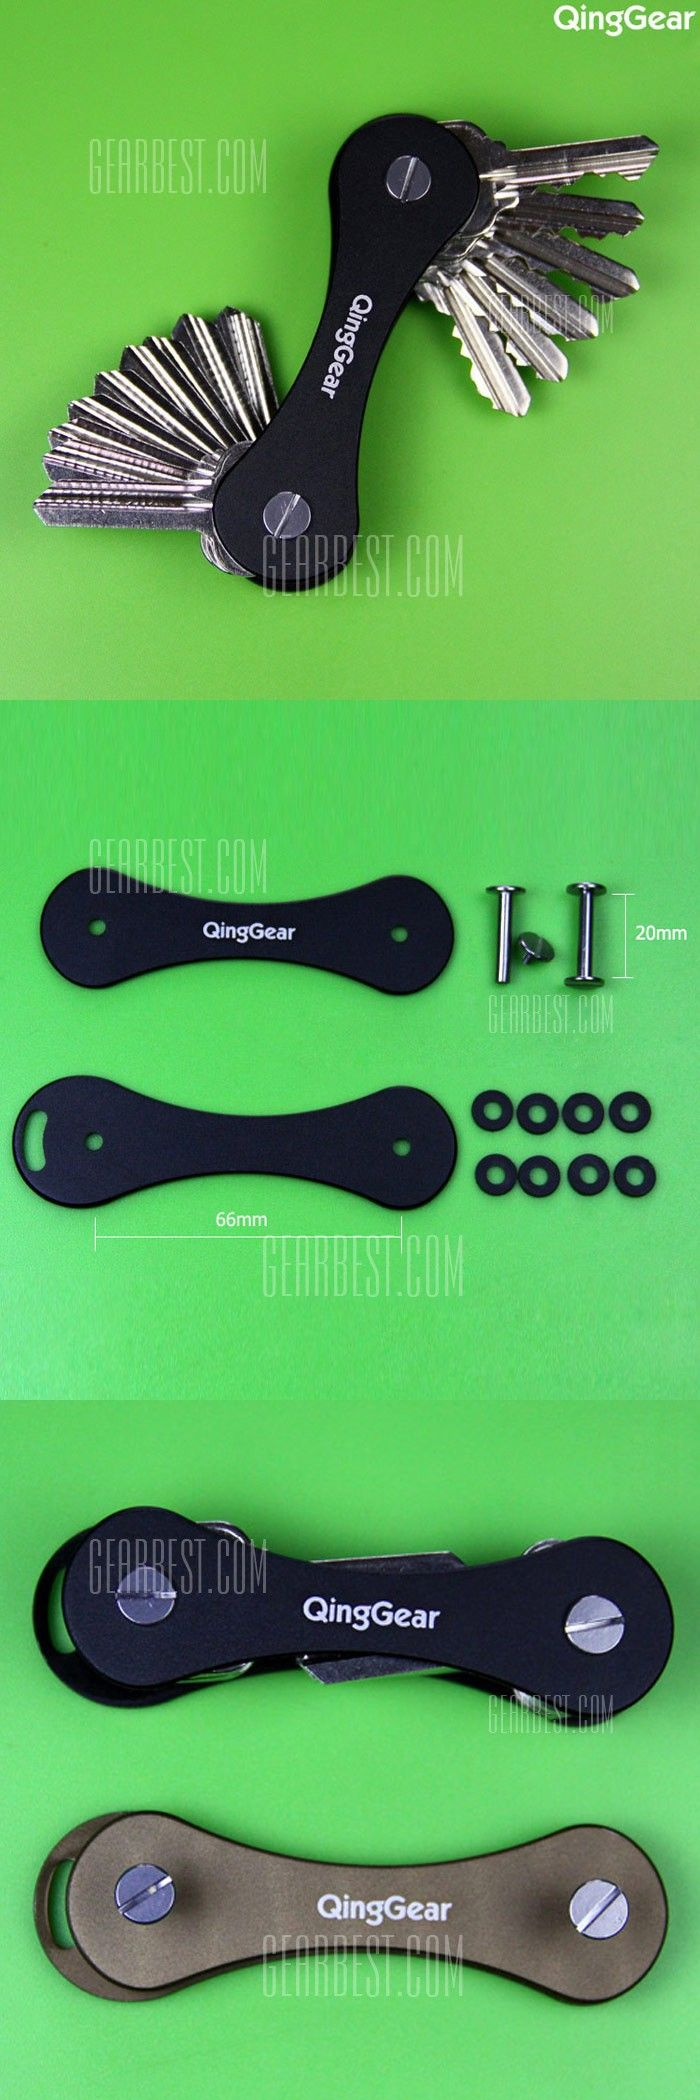 QingGear Creative Bone Shape Keys Organizer Holder Folder Key Chain Clip Pocket Tools - FREE SHIPPING - Price: $4.61 - Buy Now: https://ariani-shop.com/s/153358